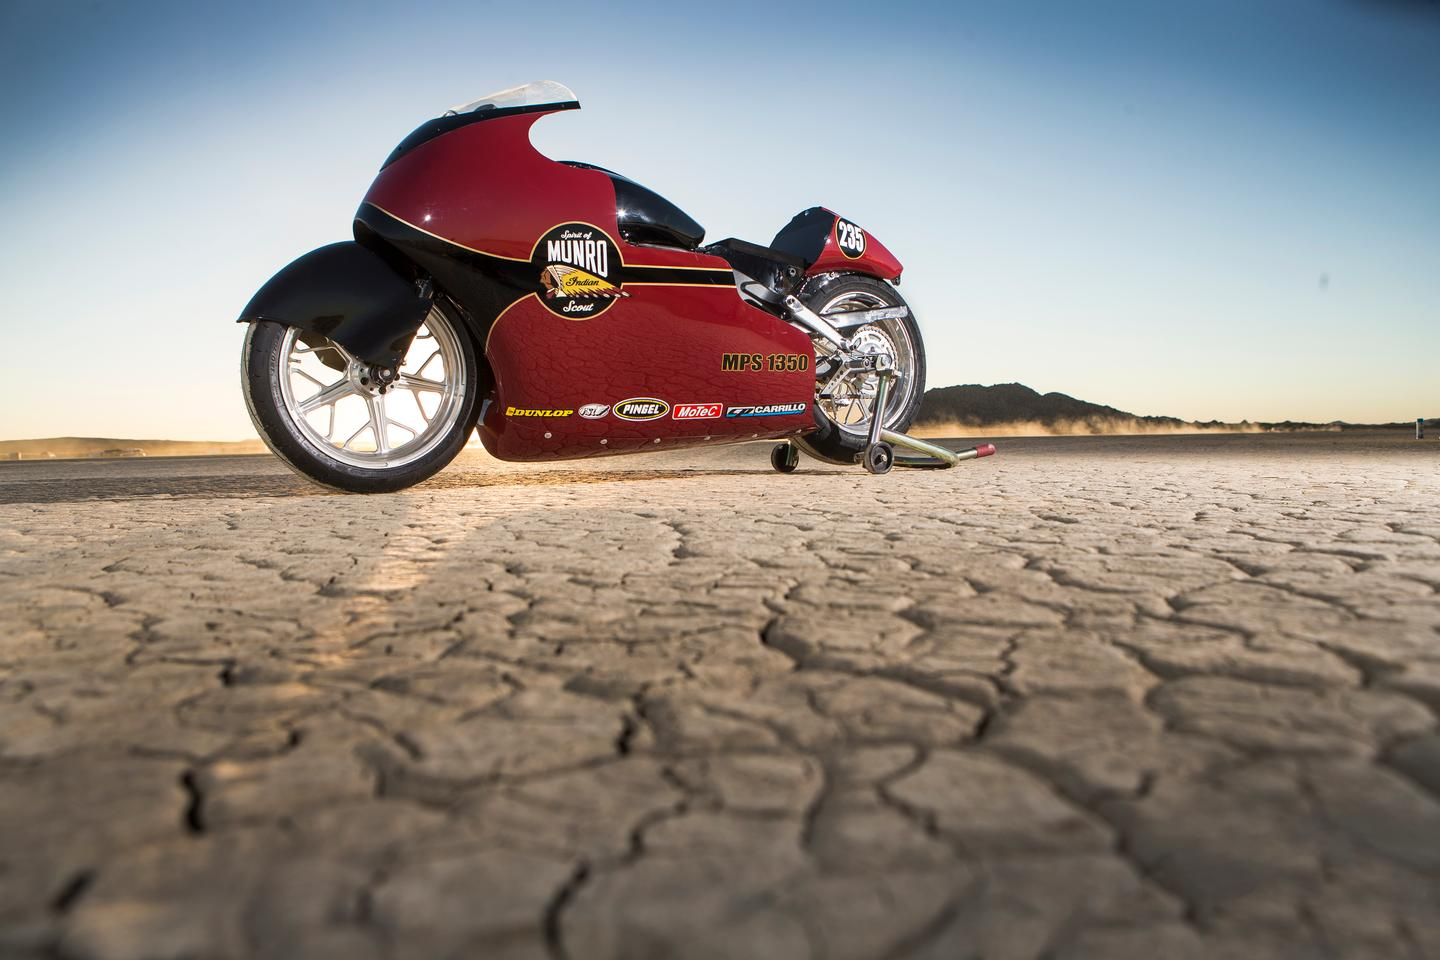 The Indian Scout Streamliner at El Mirage, California